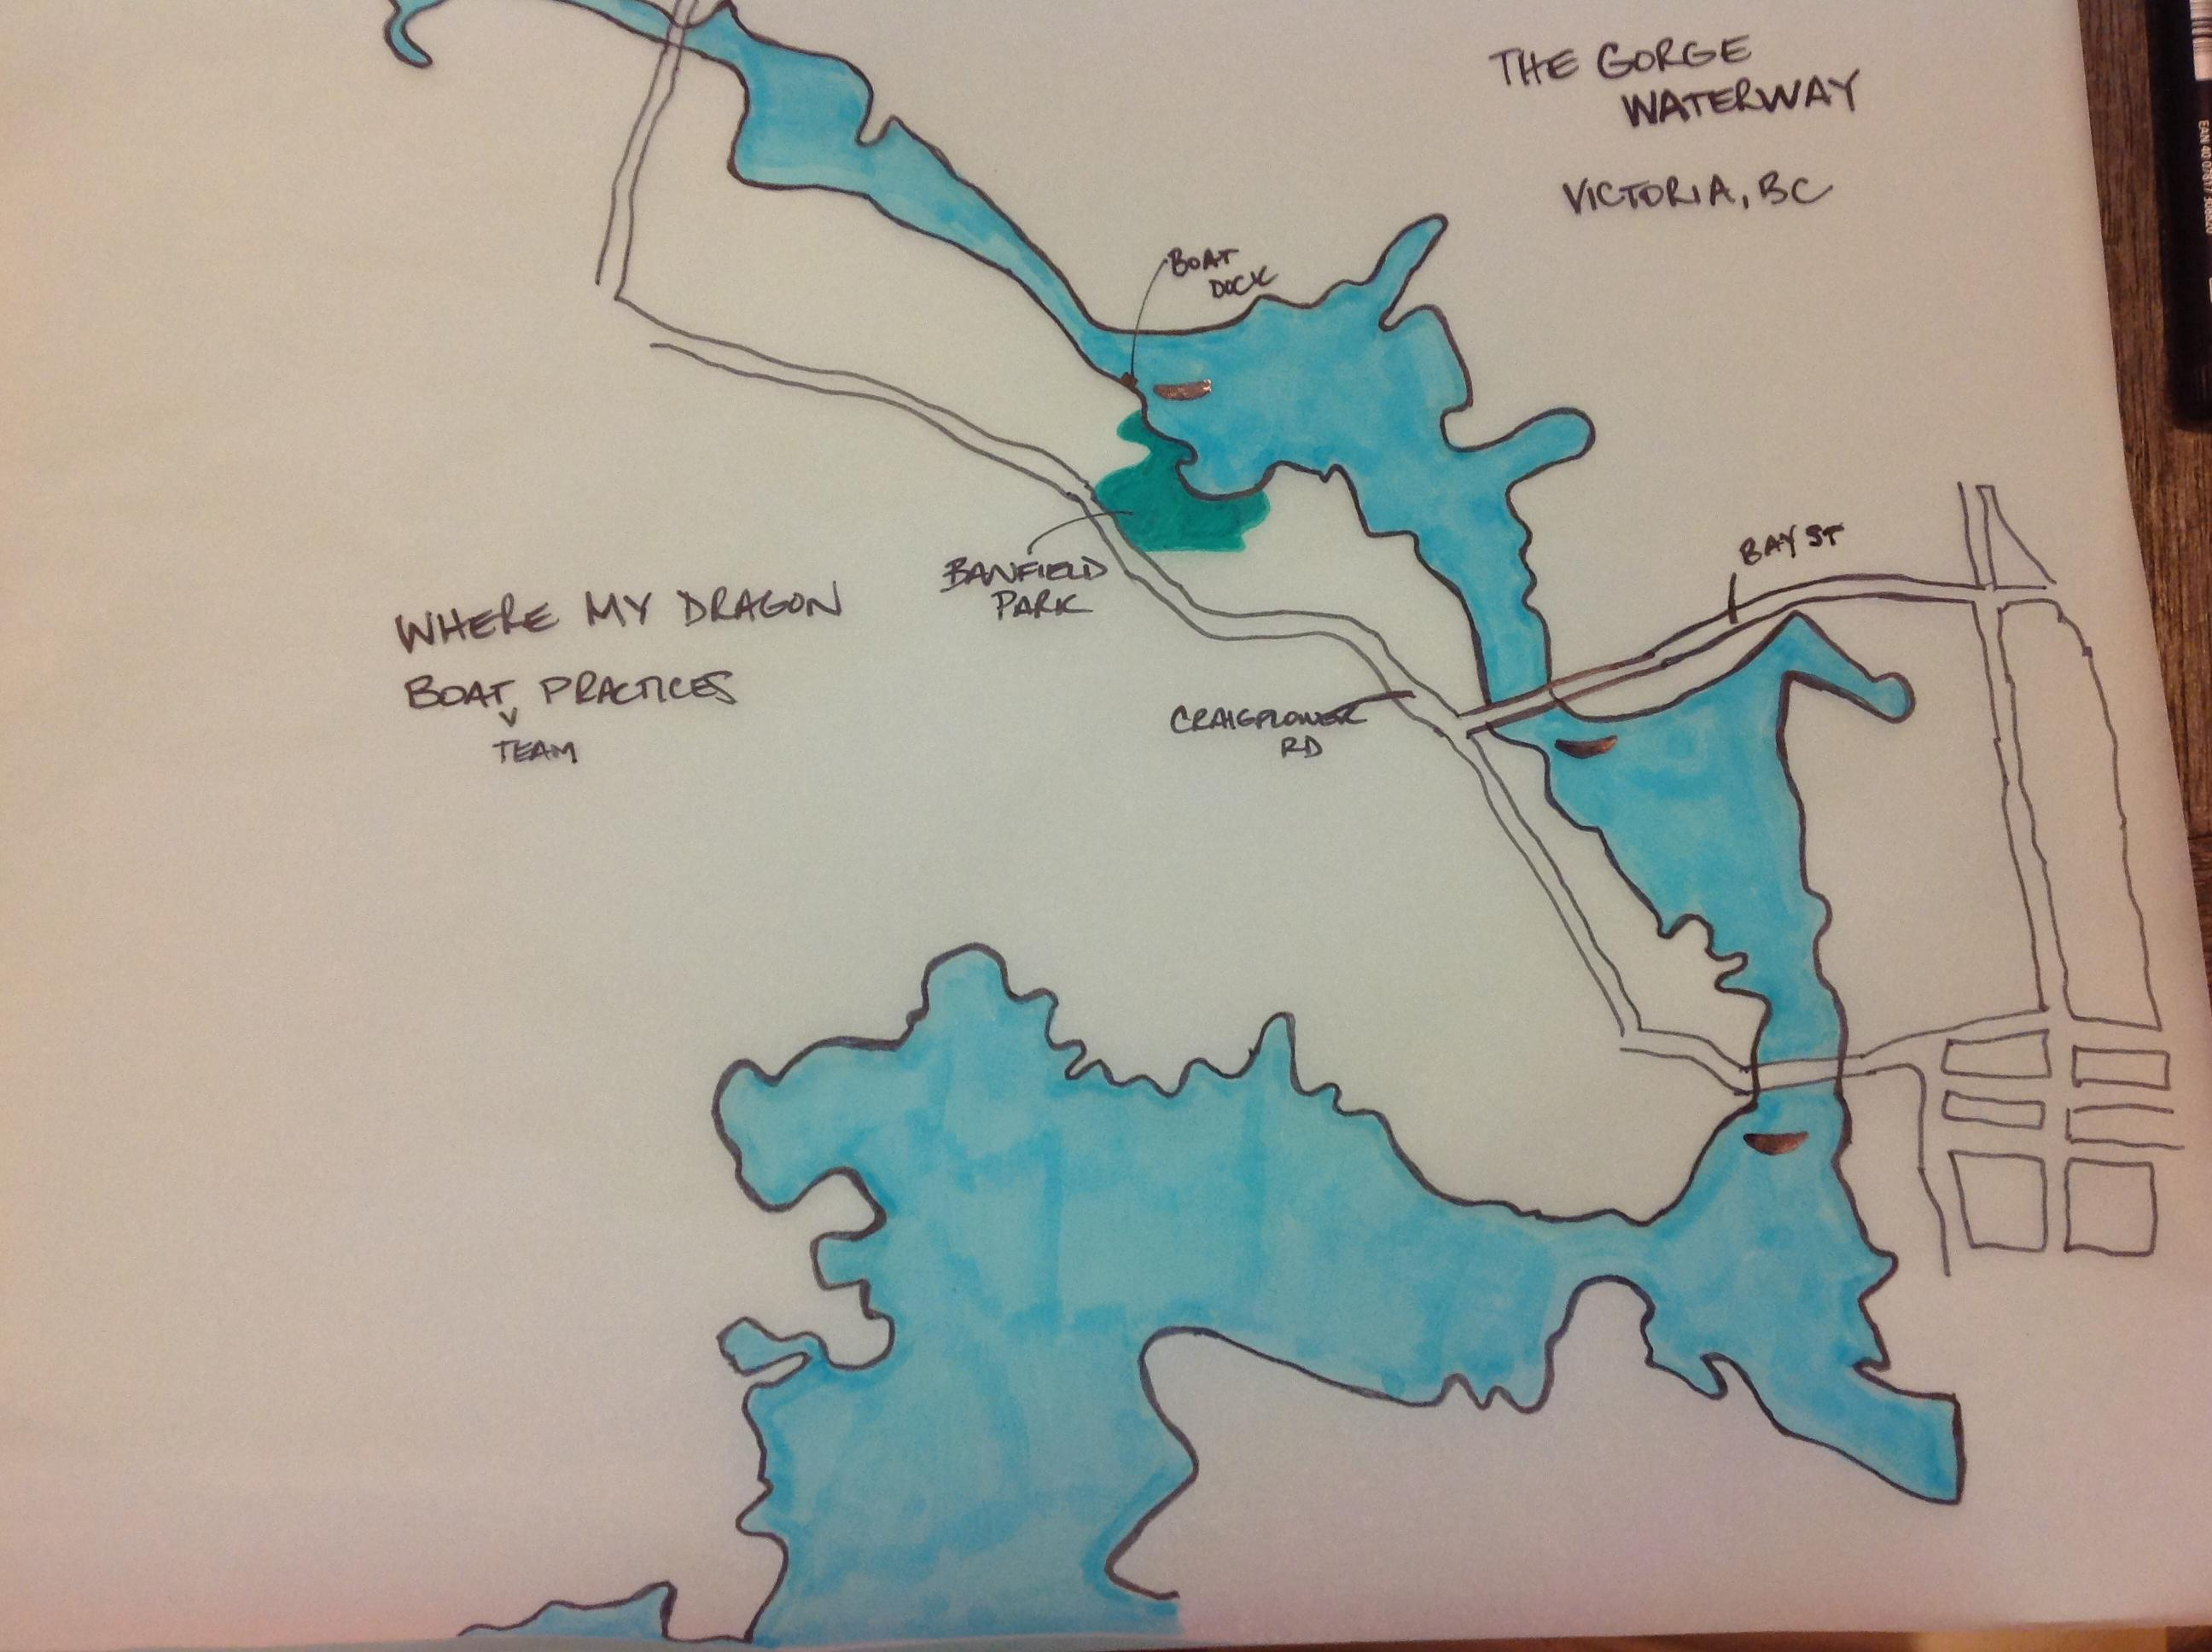 Map of Victoria's Gorge Waterway - Where my Dragon boat team practices - image 1 - student project